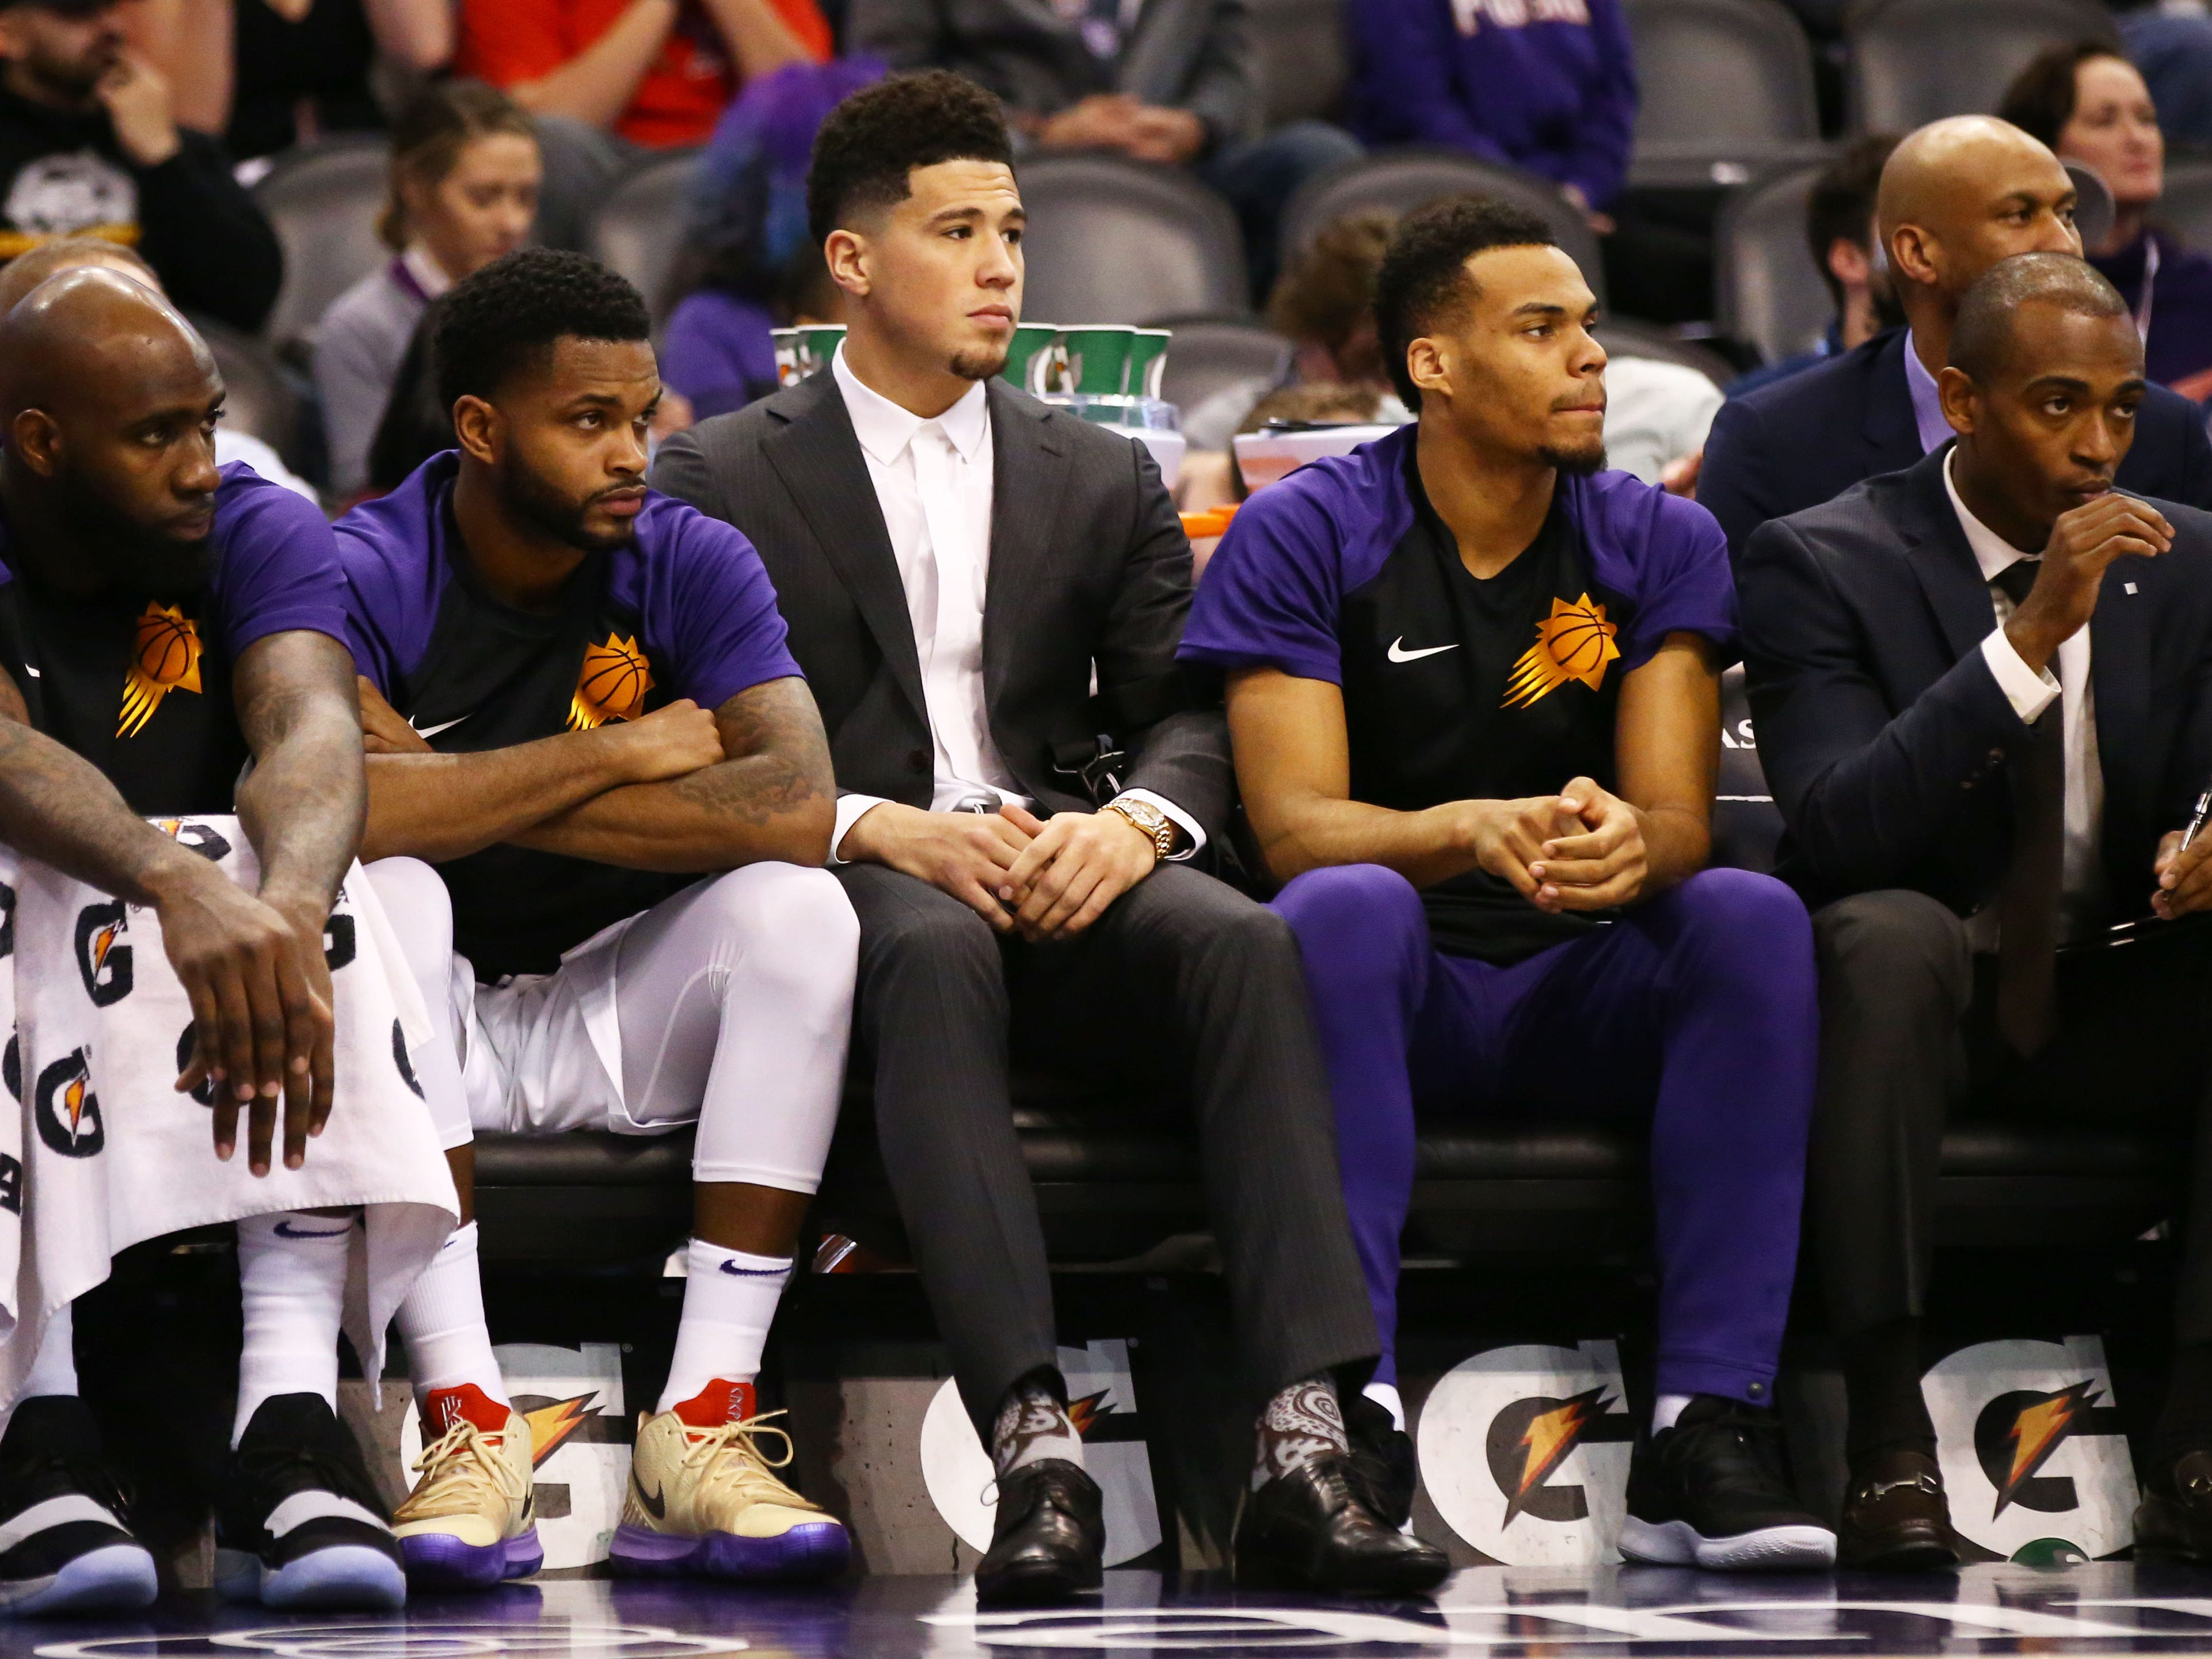 Phoenix Suns guard Devin Booker sits-out the game with injury against the Sacramento Kings in the first half on Jan. 8 at Talking Stick Resort Arena.